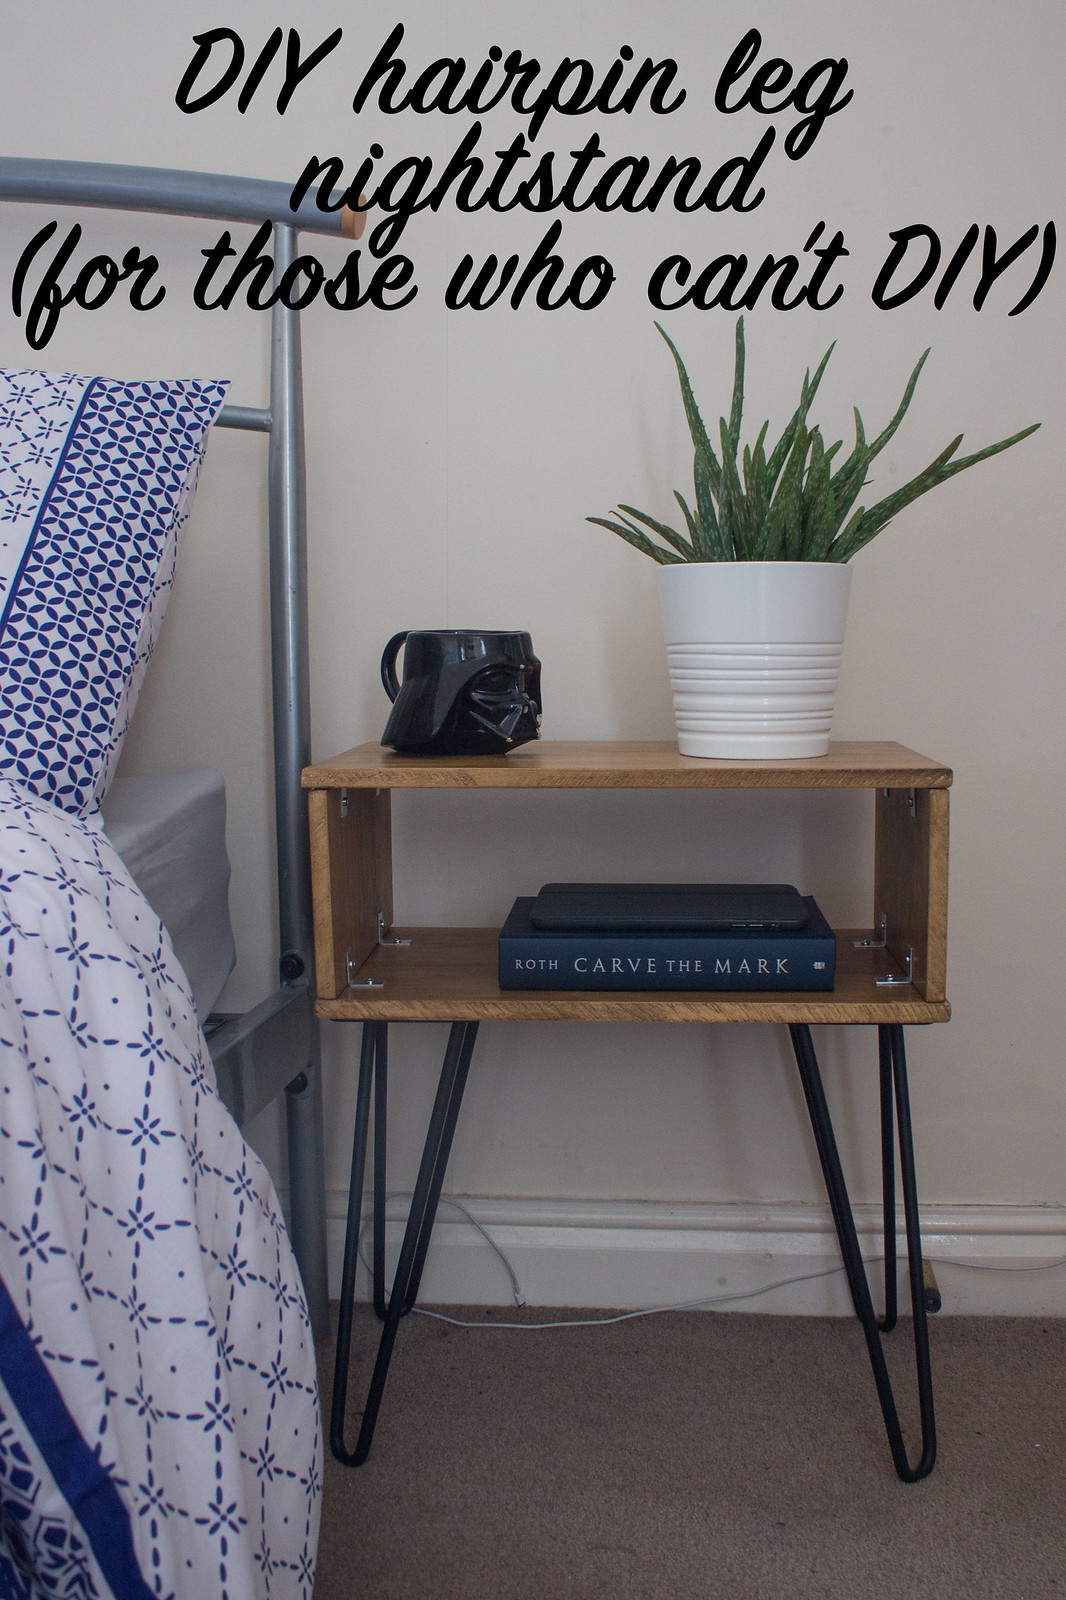 DIY hairpin leg nightstand tutorial